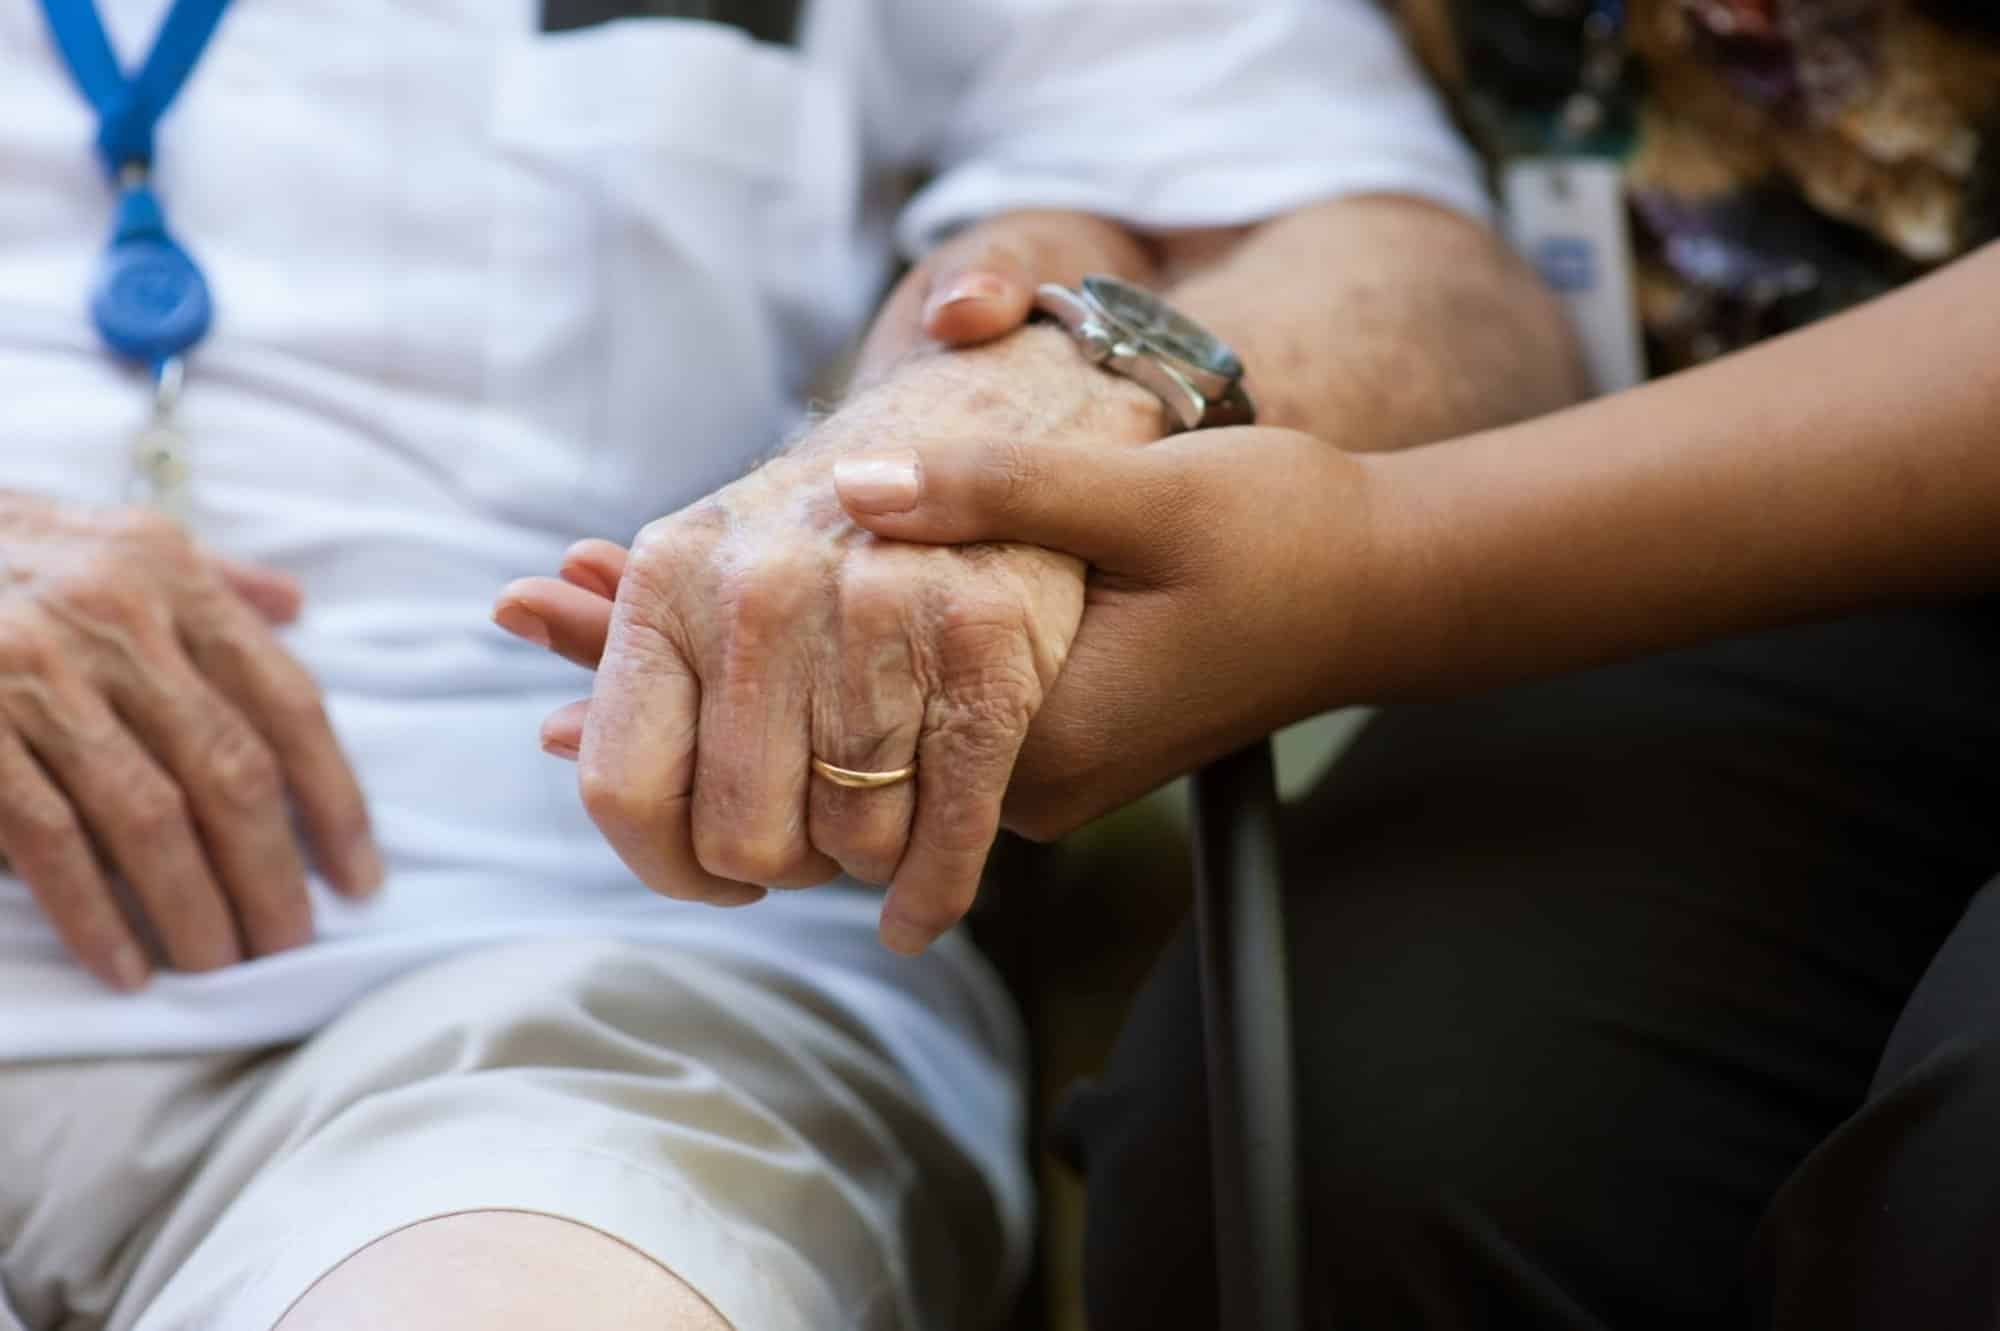 A young person holding the hand of an elderly person